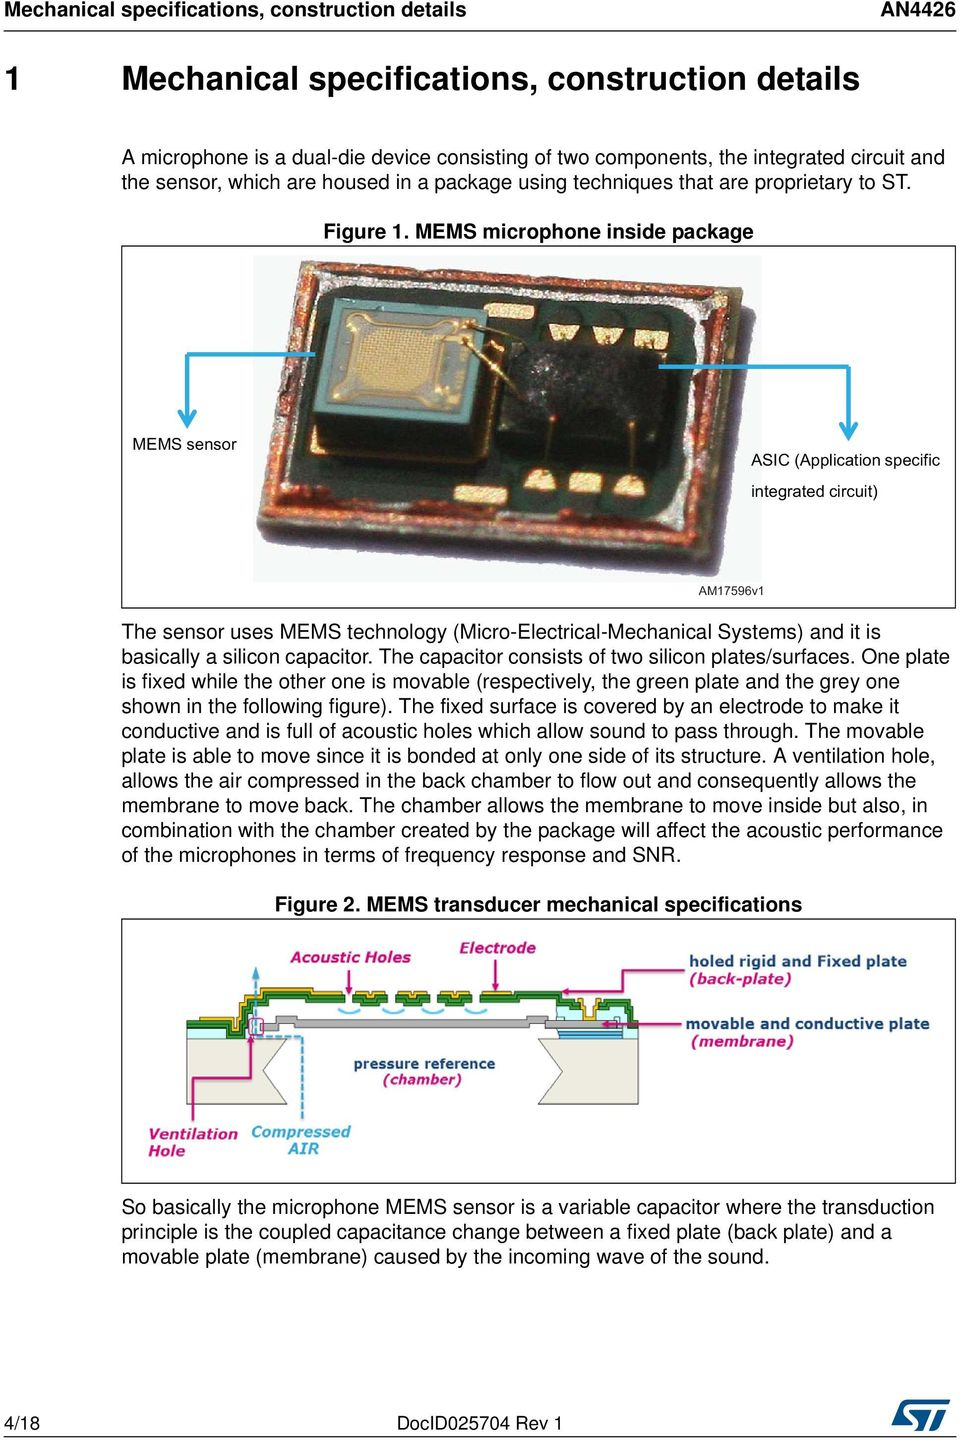 An4426 Application Note Pdf What Are The Uses Of Integrated Circuits With Pictures Mems Microphone Inside Package Sensor Asic Specific Circuit Am17596v1